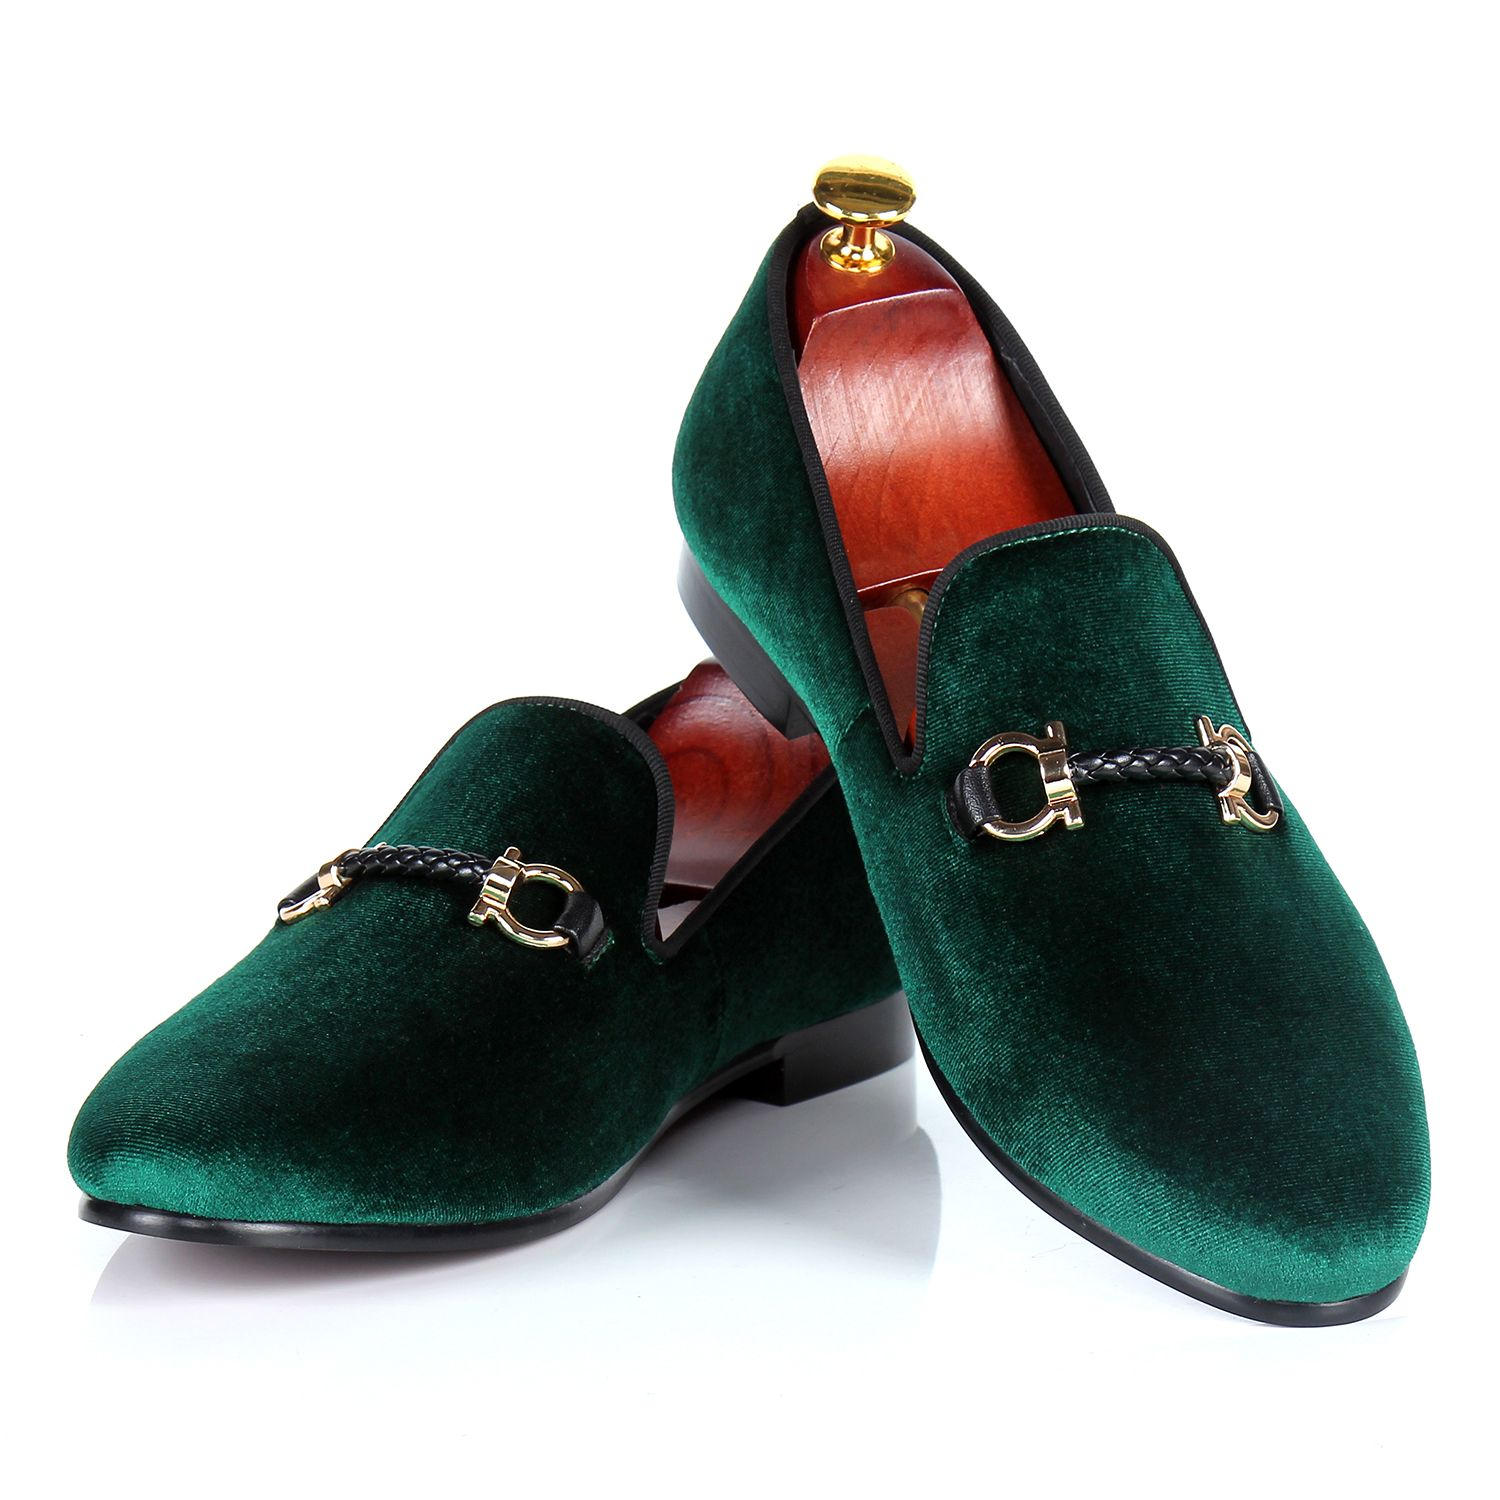 mens dress shoes green velvet loafers shoes woven buckle strap wedding shoes custom free drop shipping size 7-14